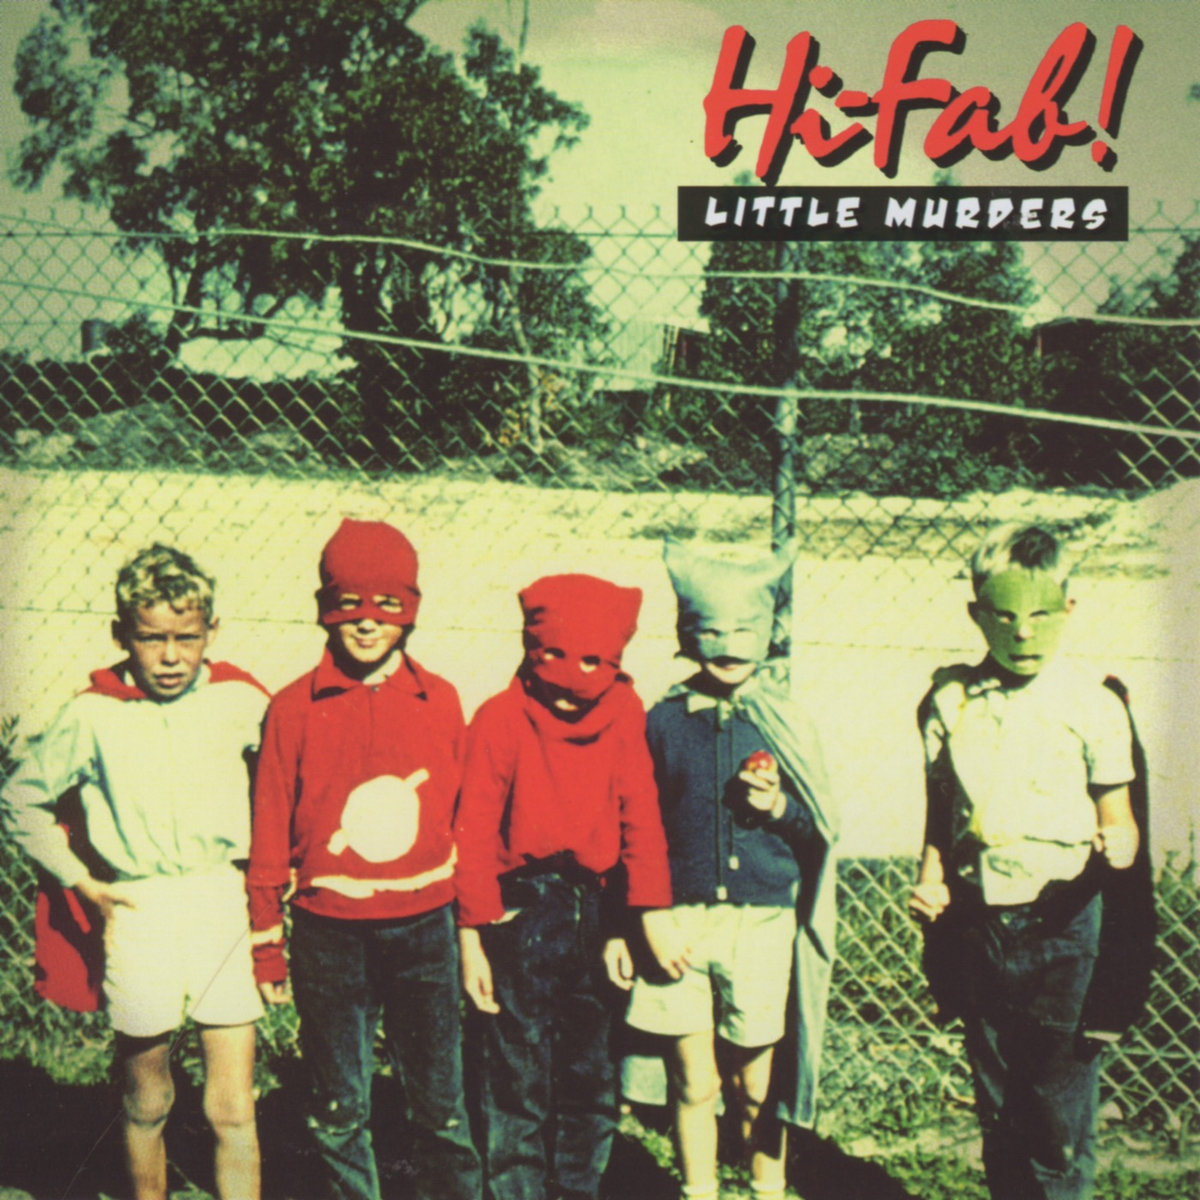 Consistent Brilliance: The Little Murders' Hi-Fab!